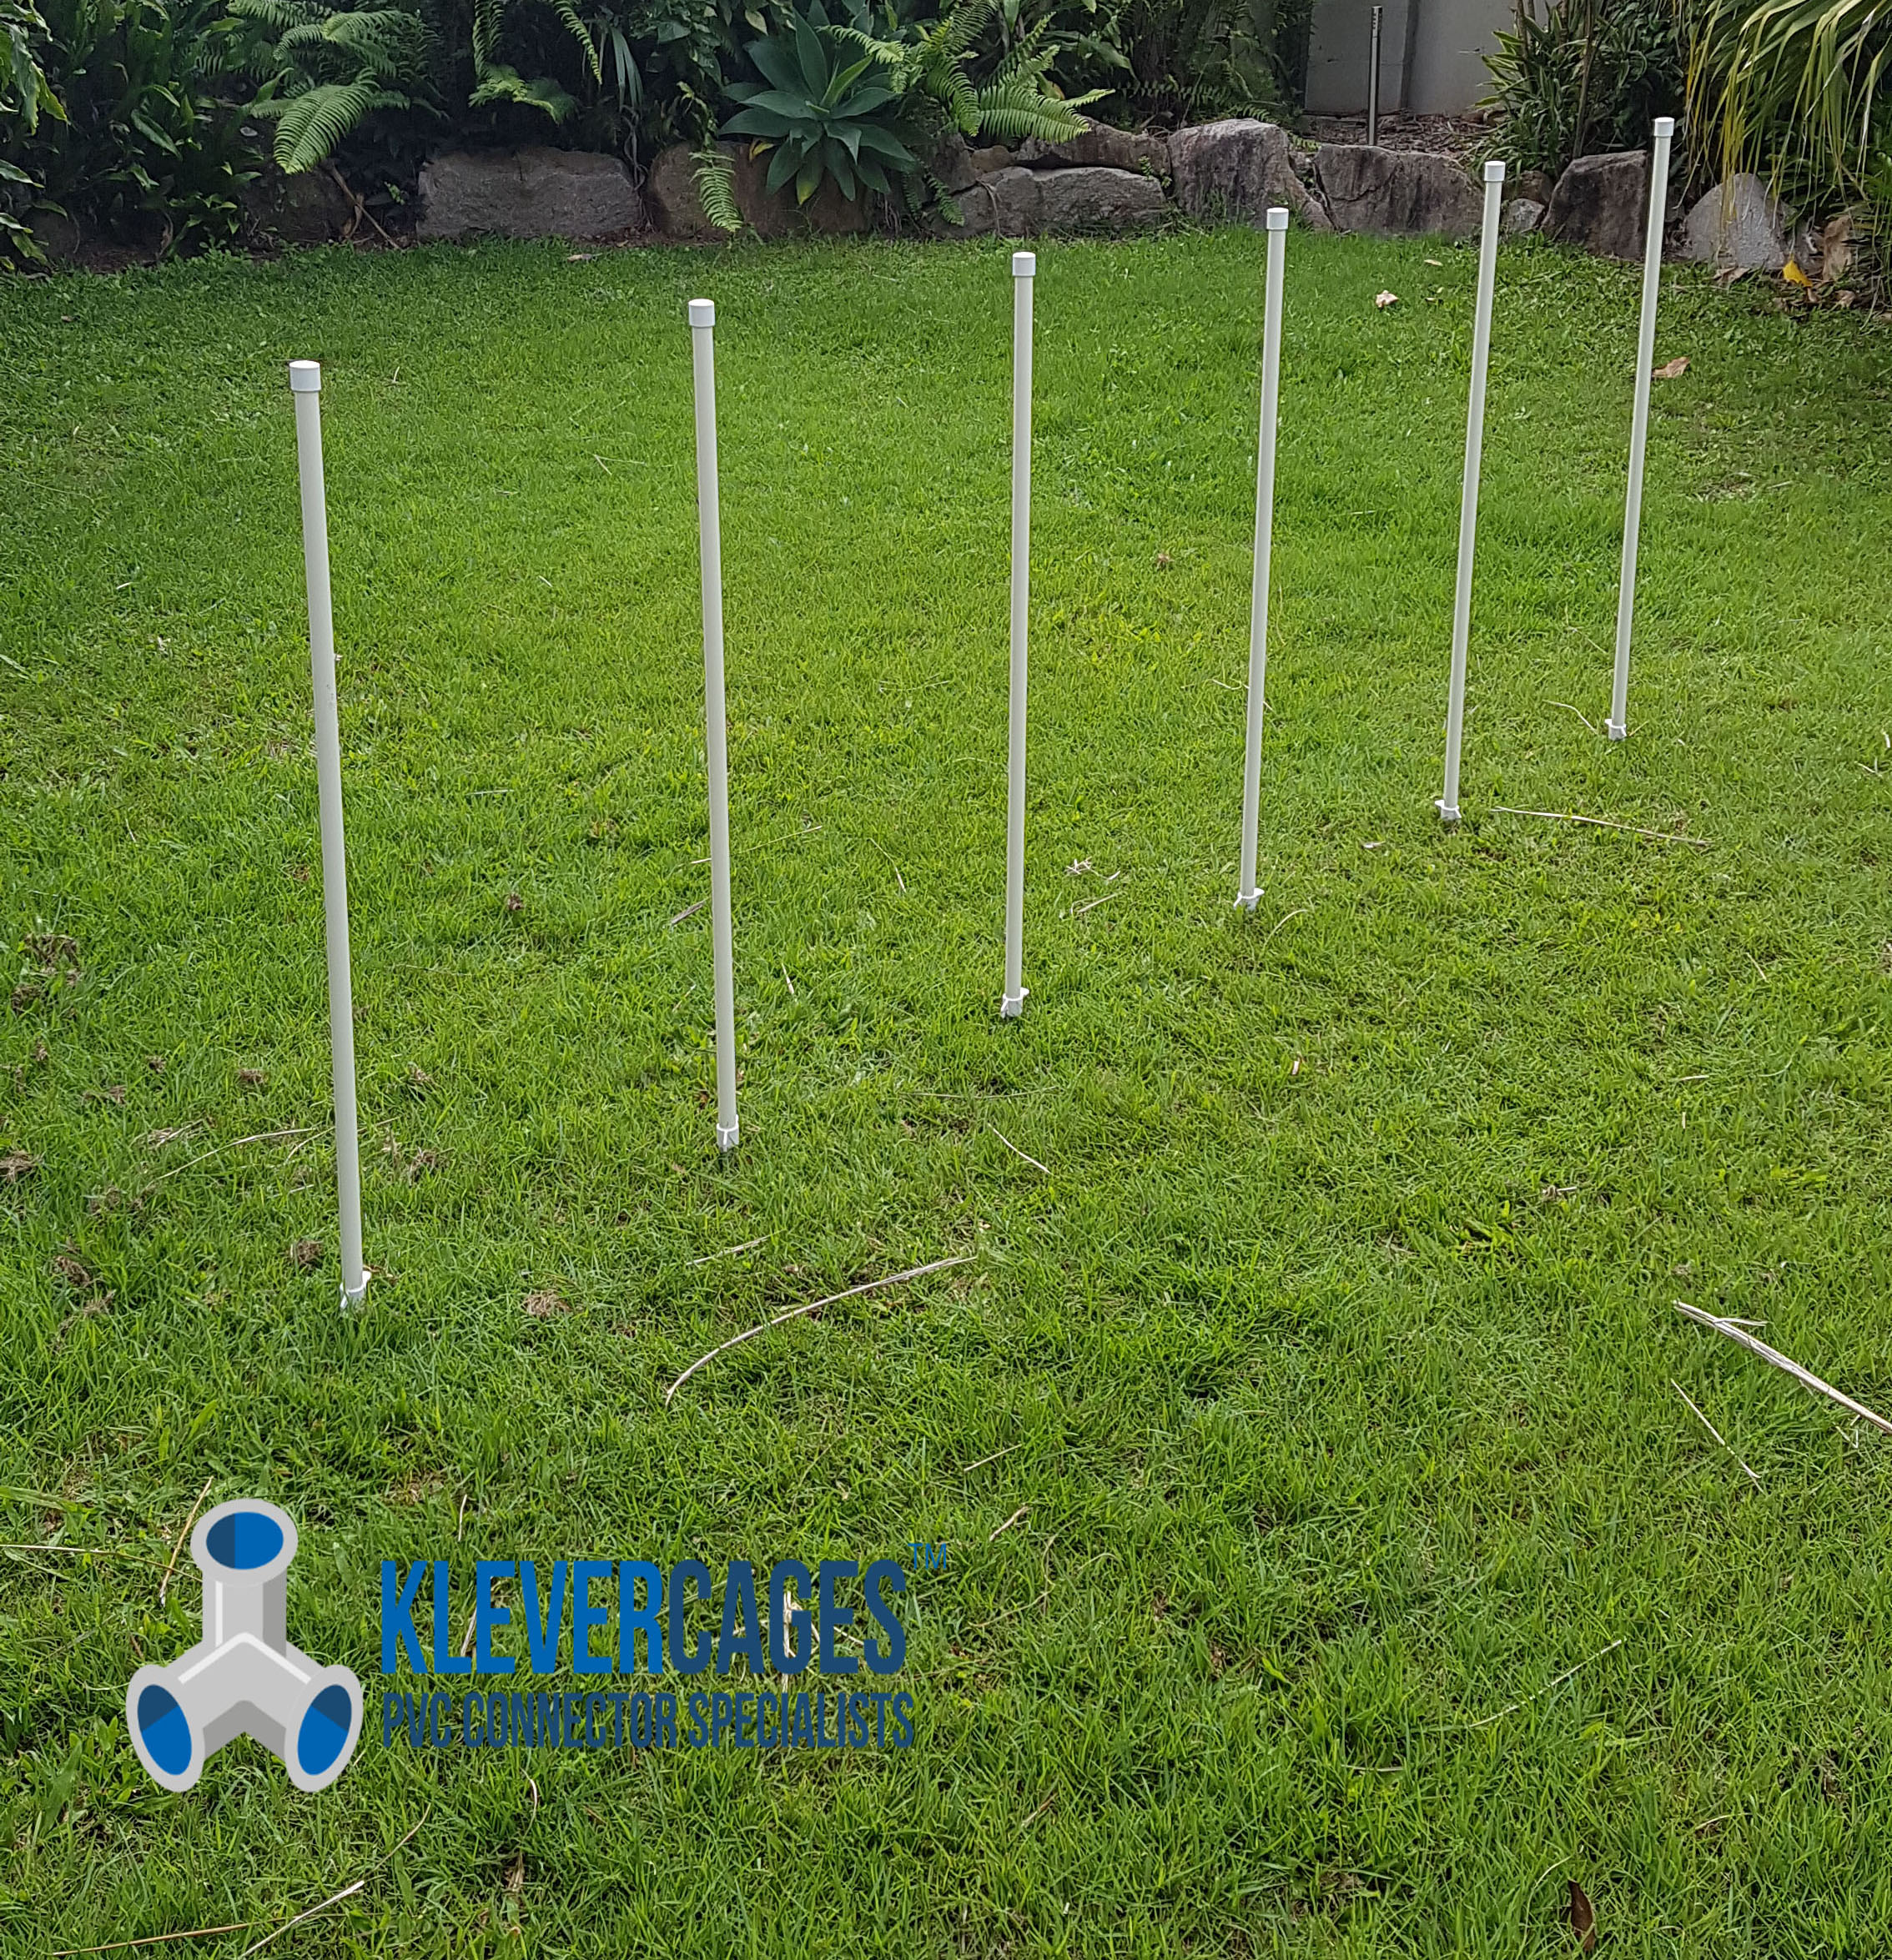 pvc-waeve-poles-from-klever-cages-for-dog-agility-1.jpg